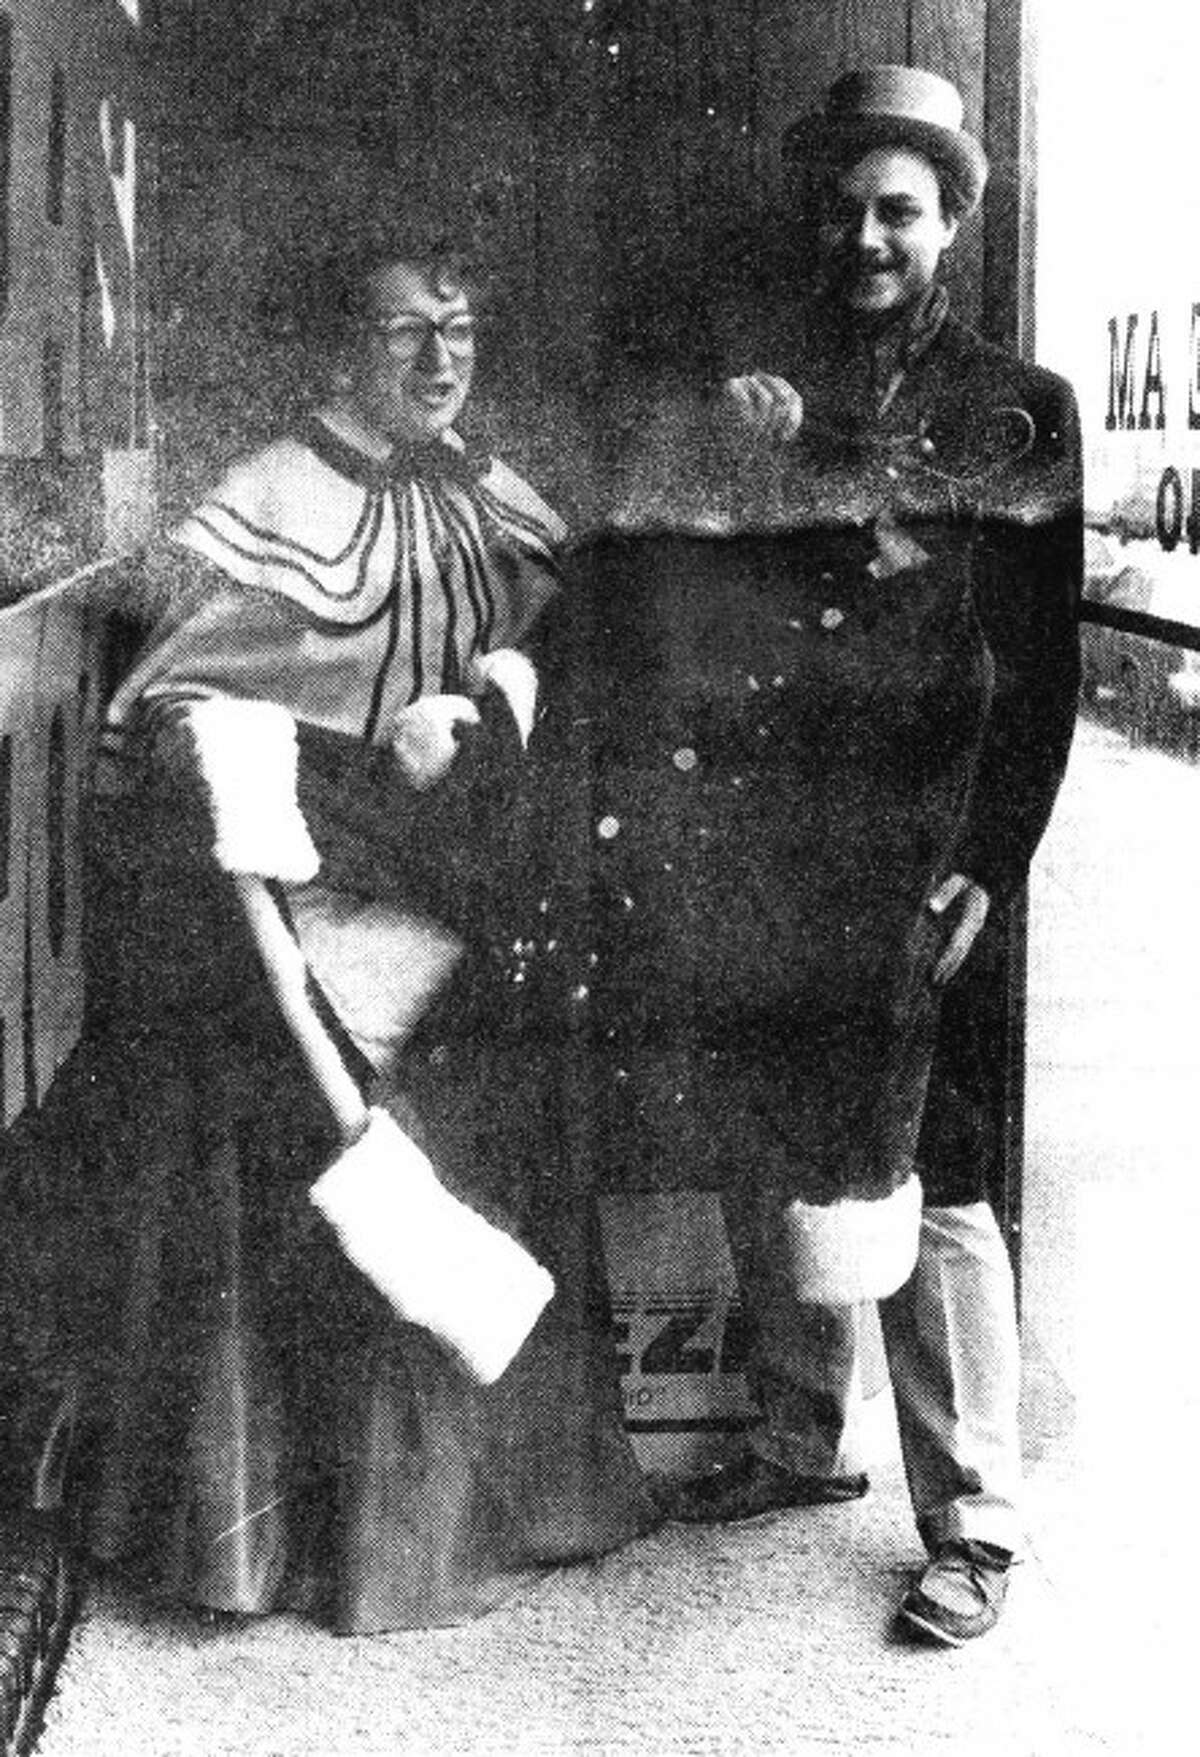 Pictured in 1989, Amanda Pinkerton and Jerry Smith were co-founders of the Victorian Sleighbell Parade and Old Christmas Weekend.